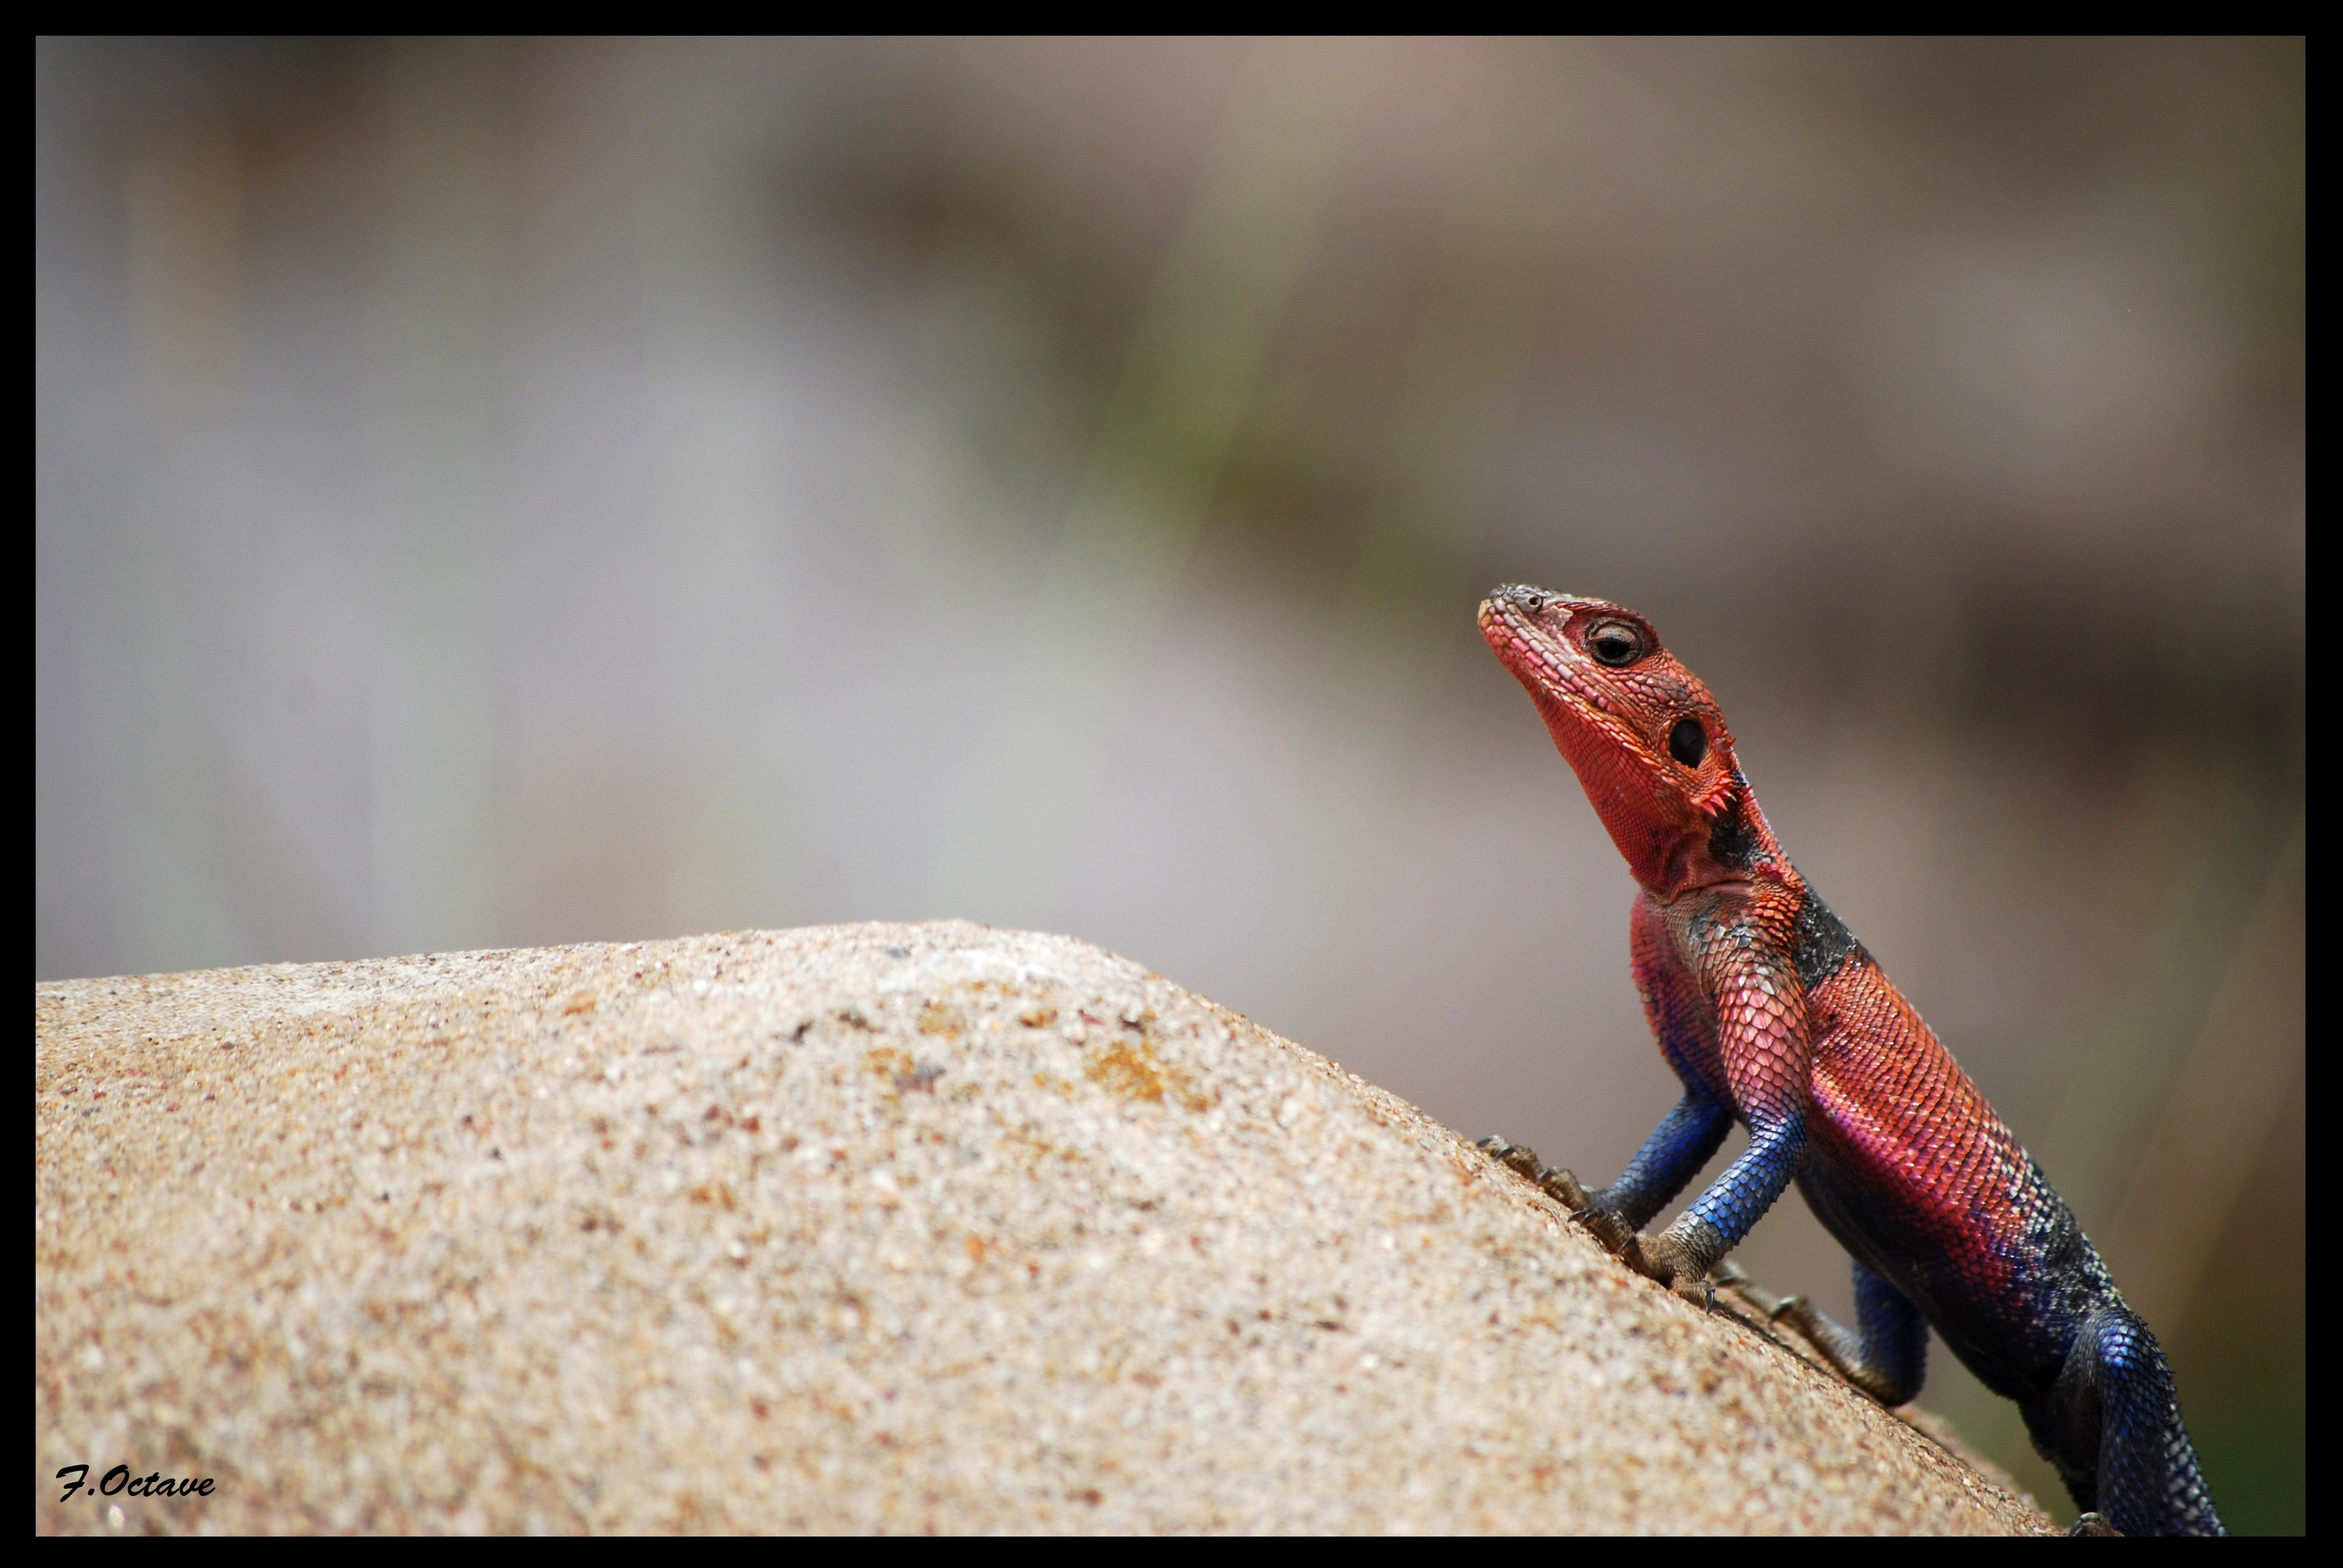 lizards reptiles redheaded rock agama 3872x2592 wallpapers